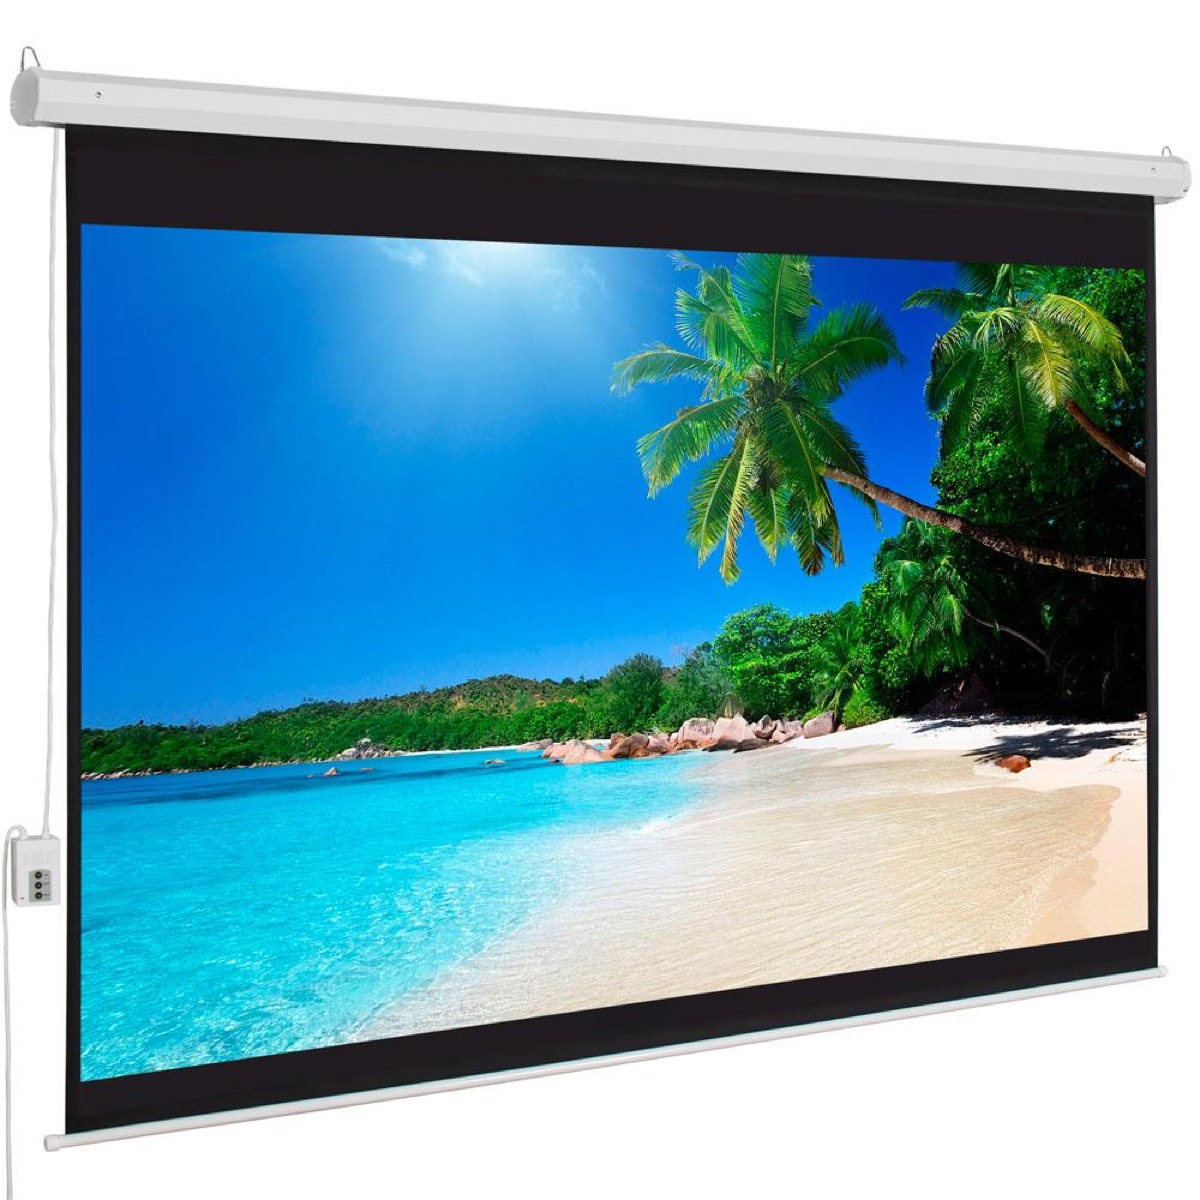 Motorized projector screen with beach image